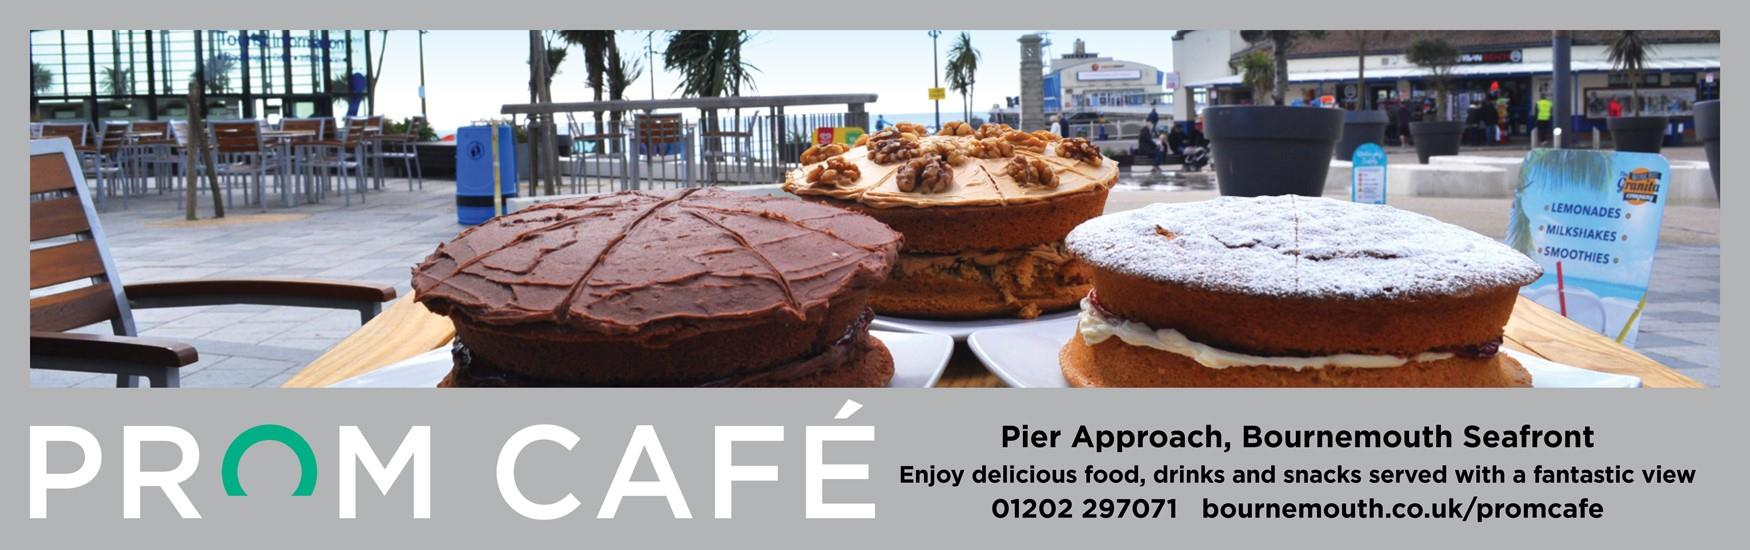 Selection of cakes with Bournemouth pier behind. Contact information is 01202 297071 and bournemouth.co.uk/promcafe